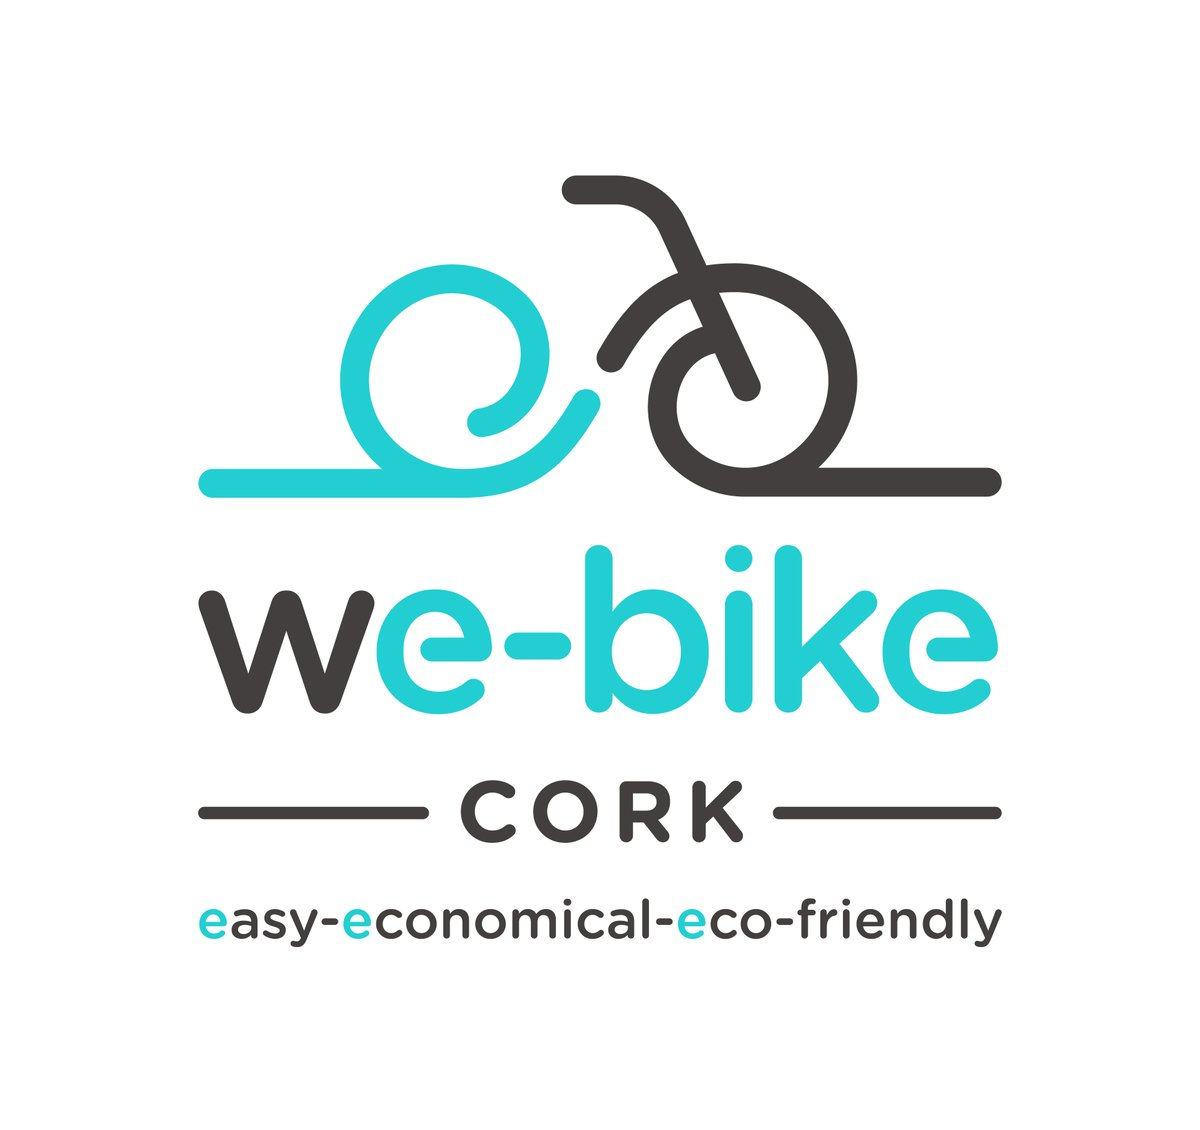 It's not only about pedal power on @CorkBikeWeek e-bikes help many go further,climb higher &make🚵‍more accessible.@CorkChamber's supporting #wEbikecork,the 1st dedicated e-bike campaign in 🇮🇪&this week we'll share plenty of updates to help you feel wheely inspired #CorkTogether https://t.co/sQYHdHbReI